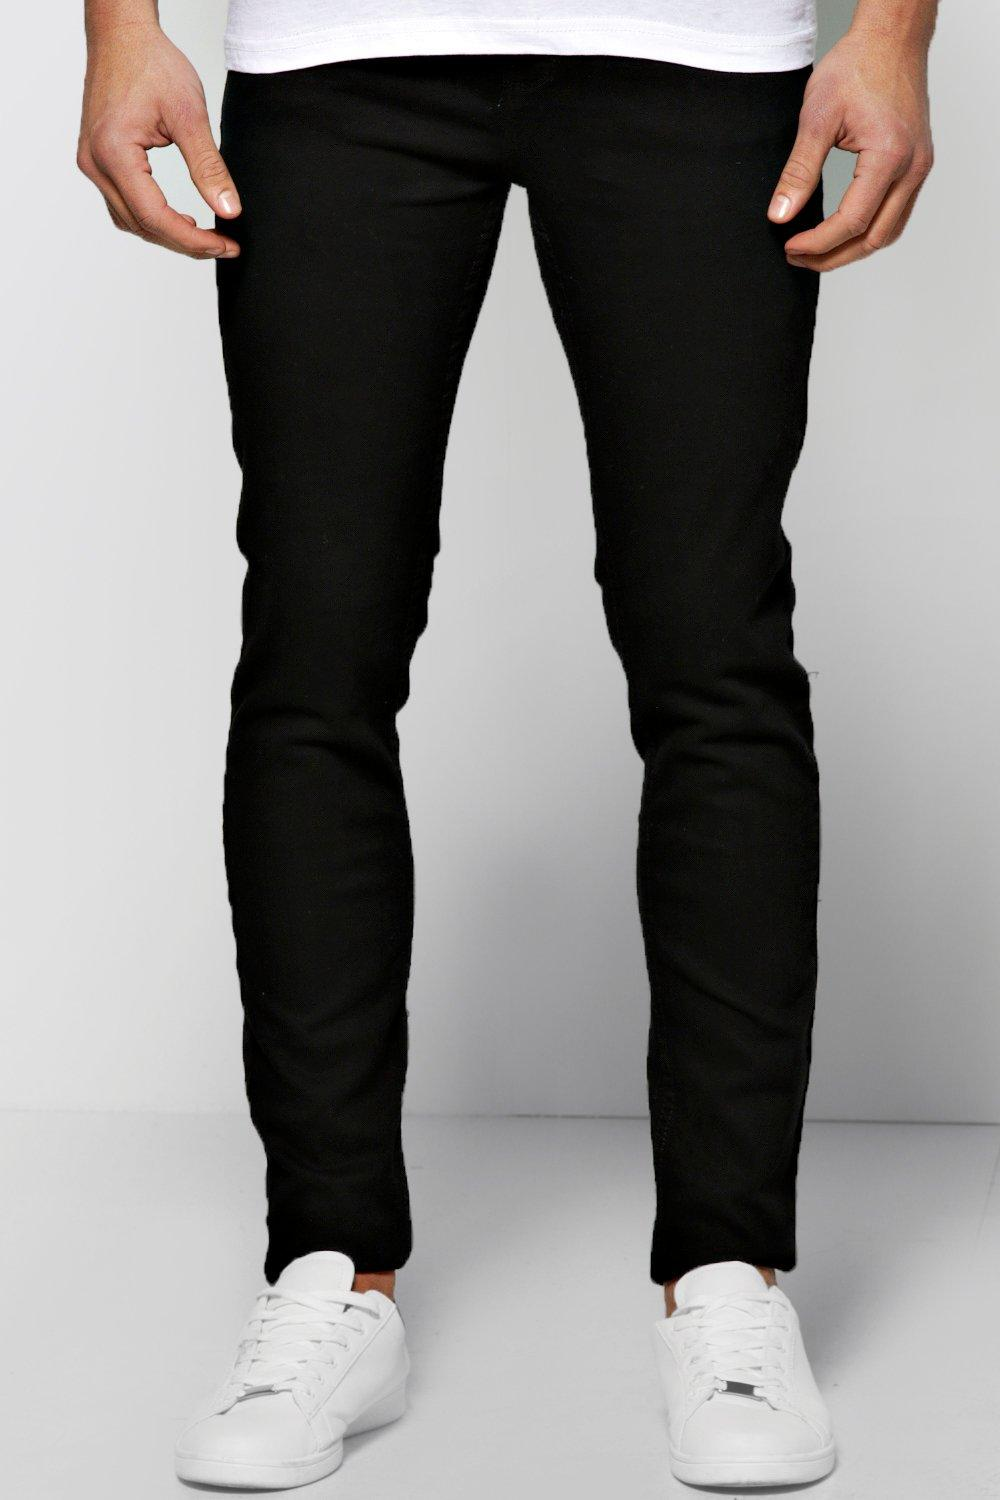 2f6f82a189 Mens Black Skinny Fit Jeans. Hover to zoom